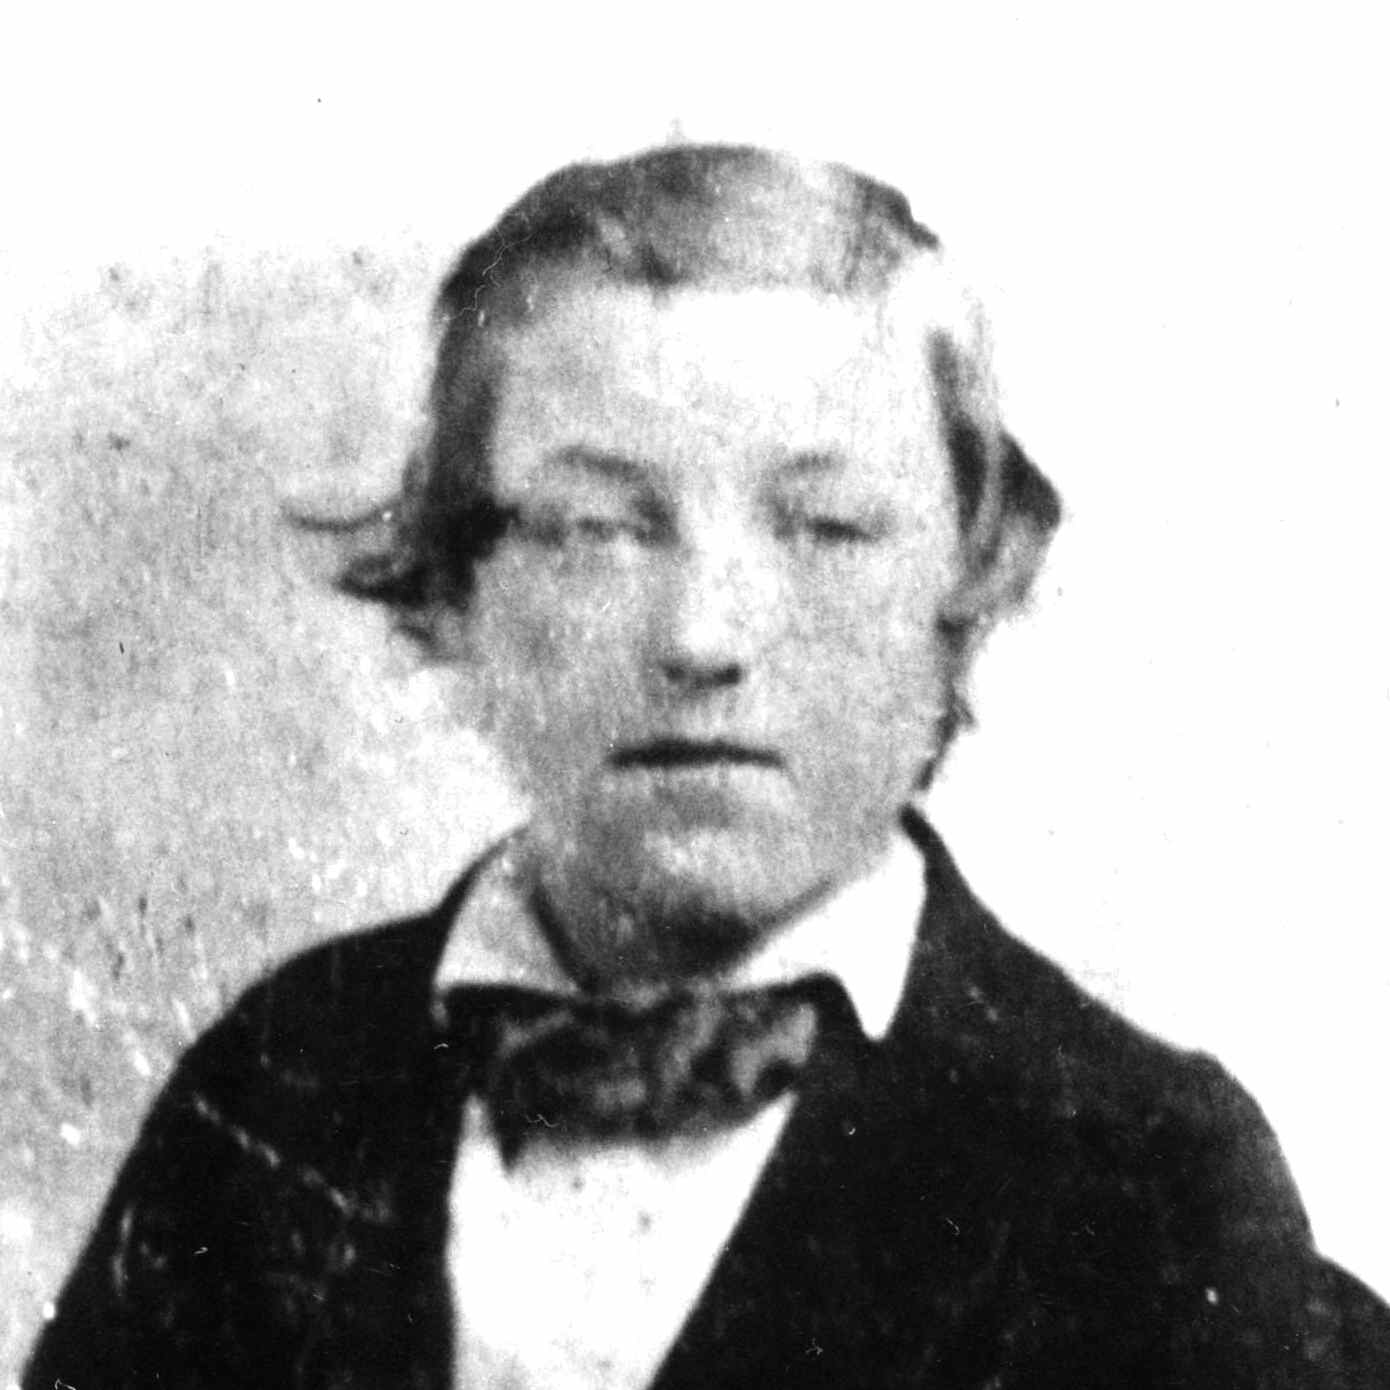 Image taken in the 1860s